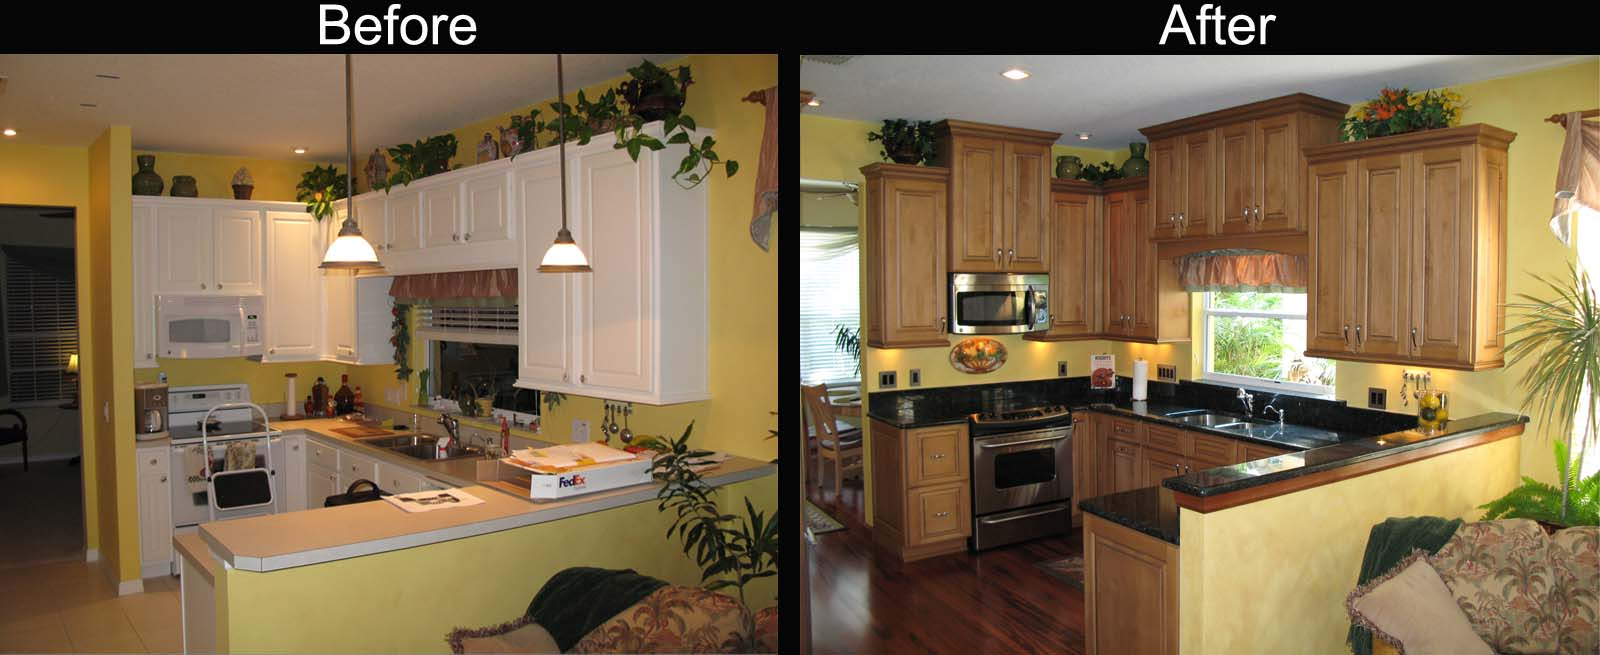 Kitchen decor kitchen remodel before and after for Kitchen home remodeling